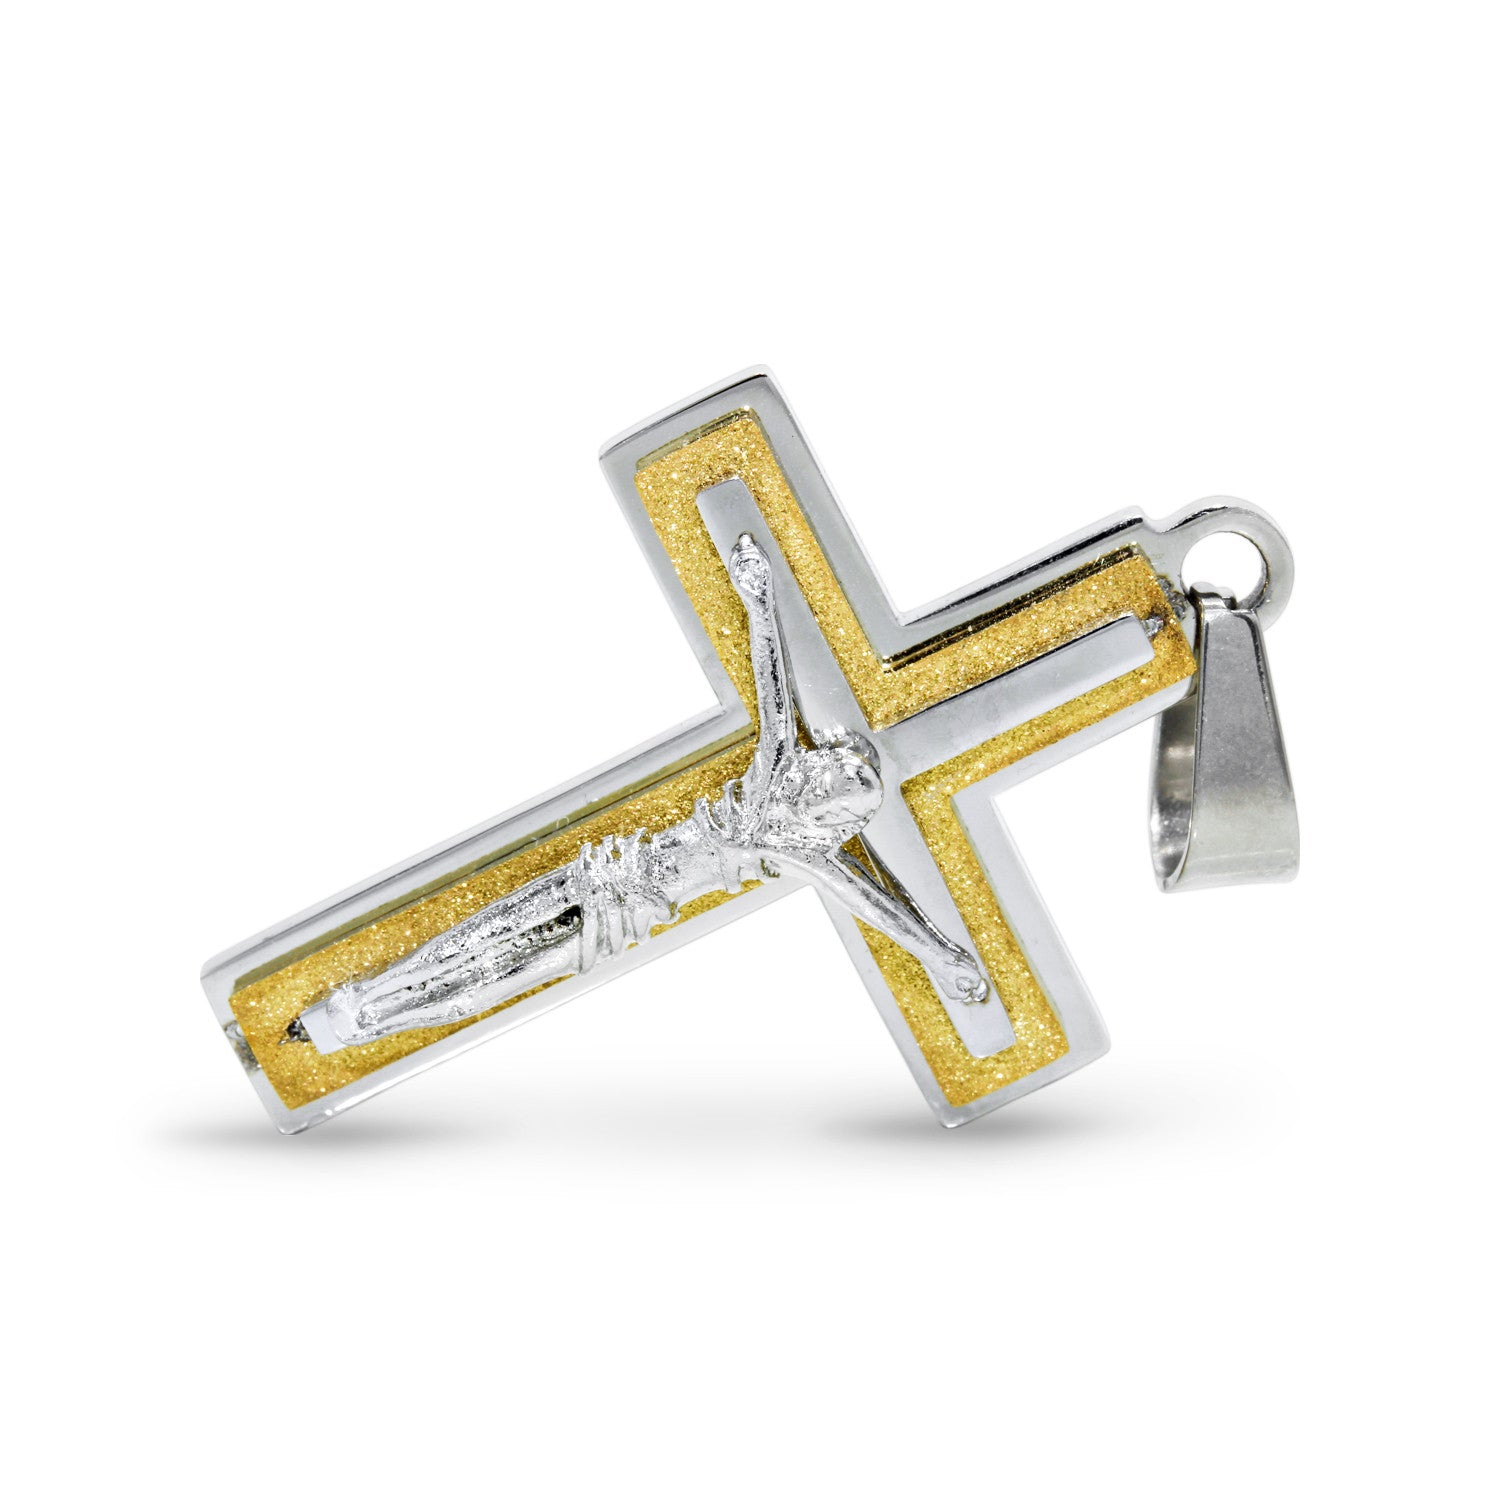 crucifix space junk gold pendant yellow palmbeach